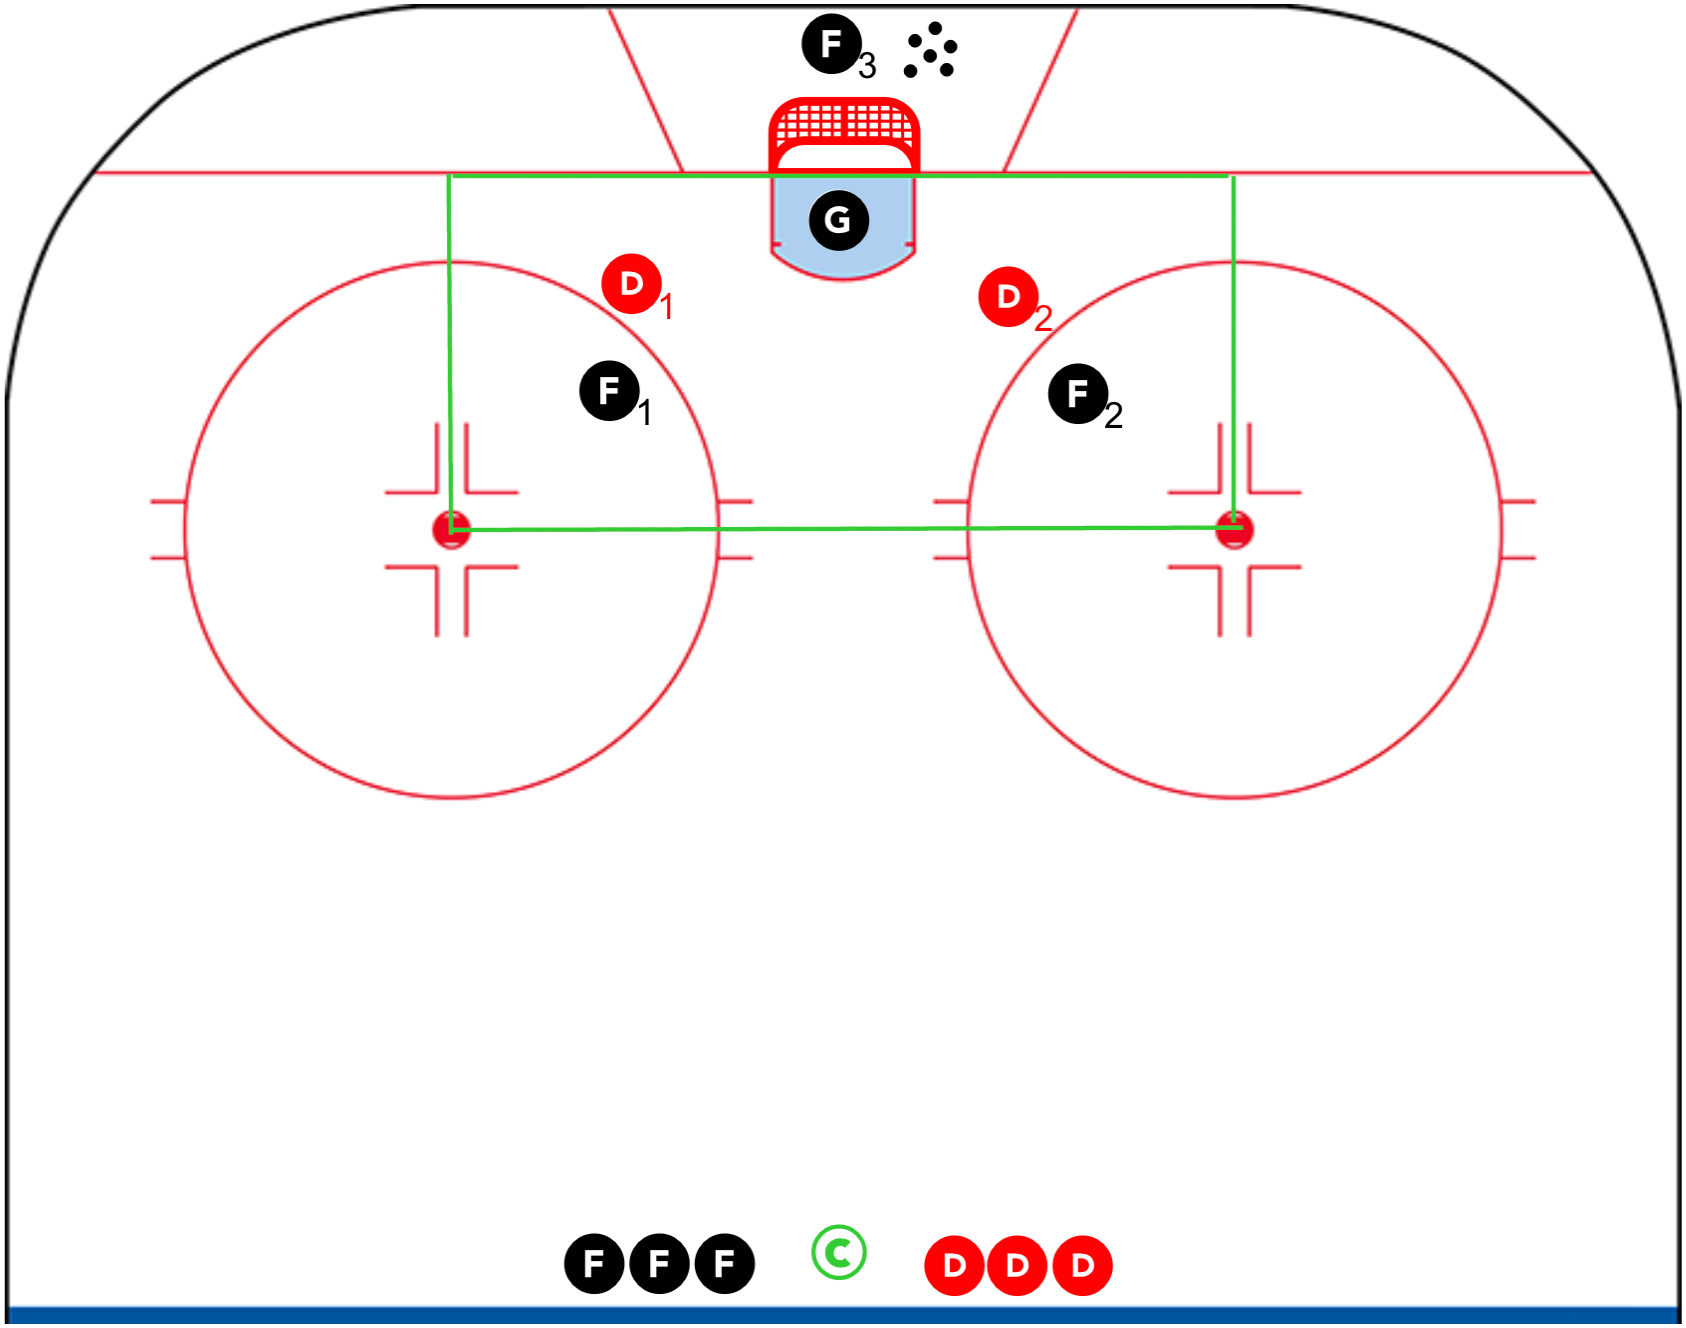 Small-Area-Game-Net-Front-2on2-Drill-CoachThem